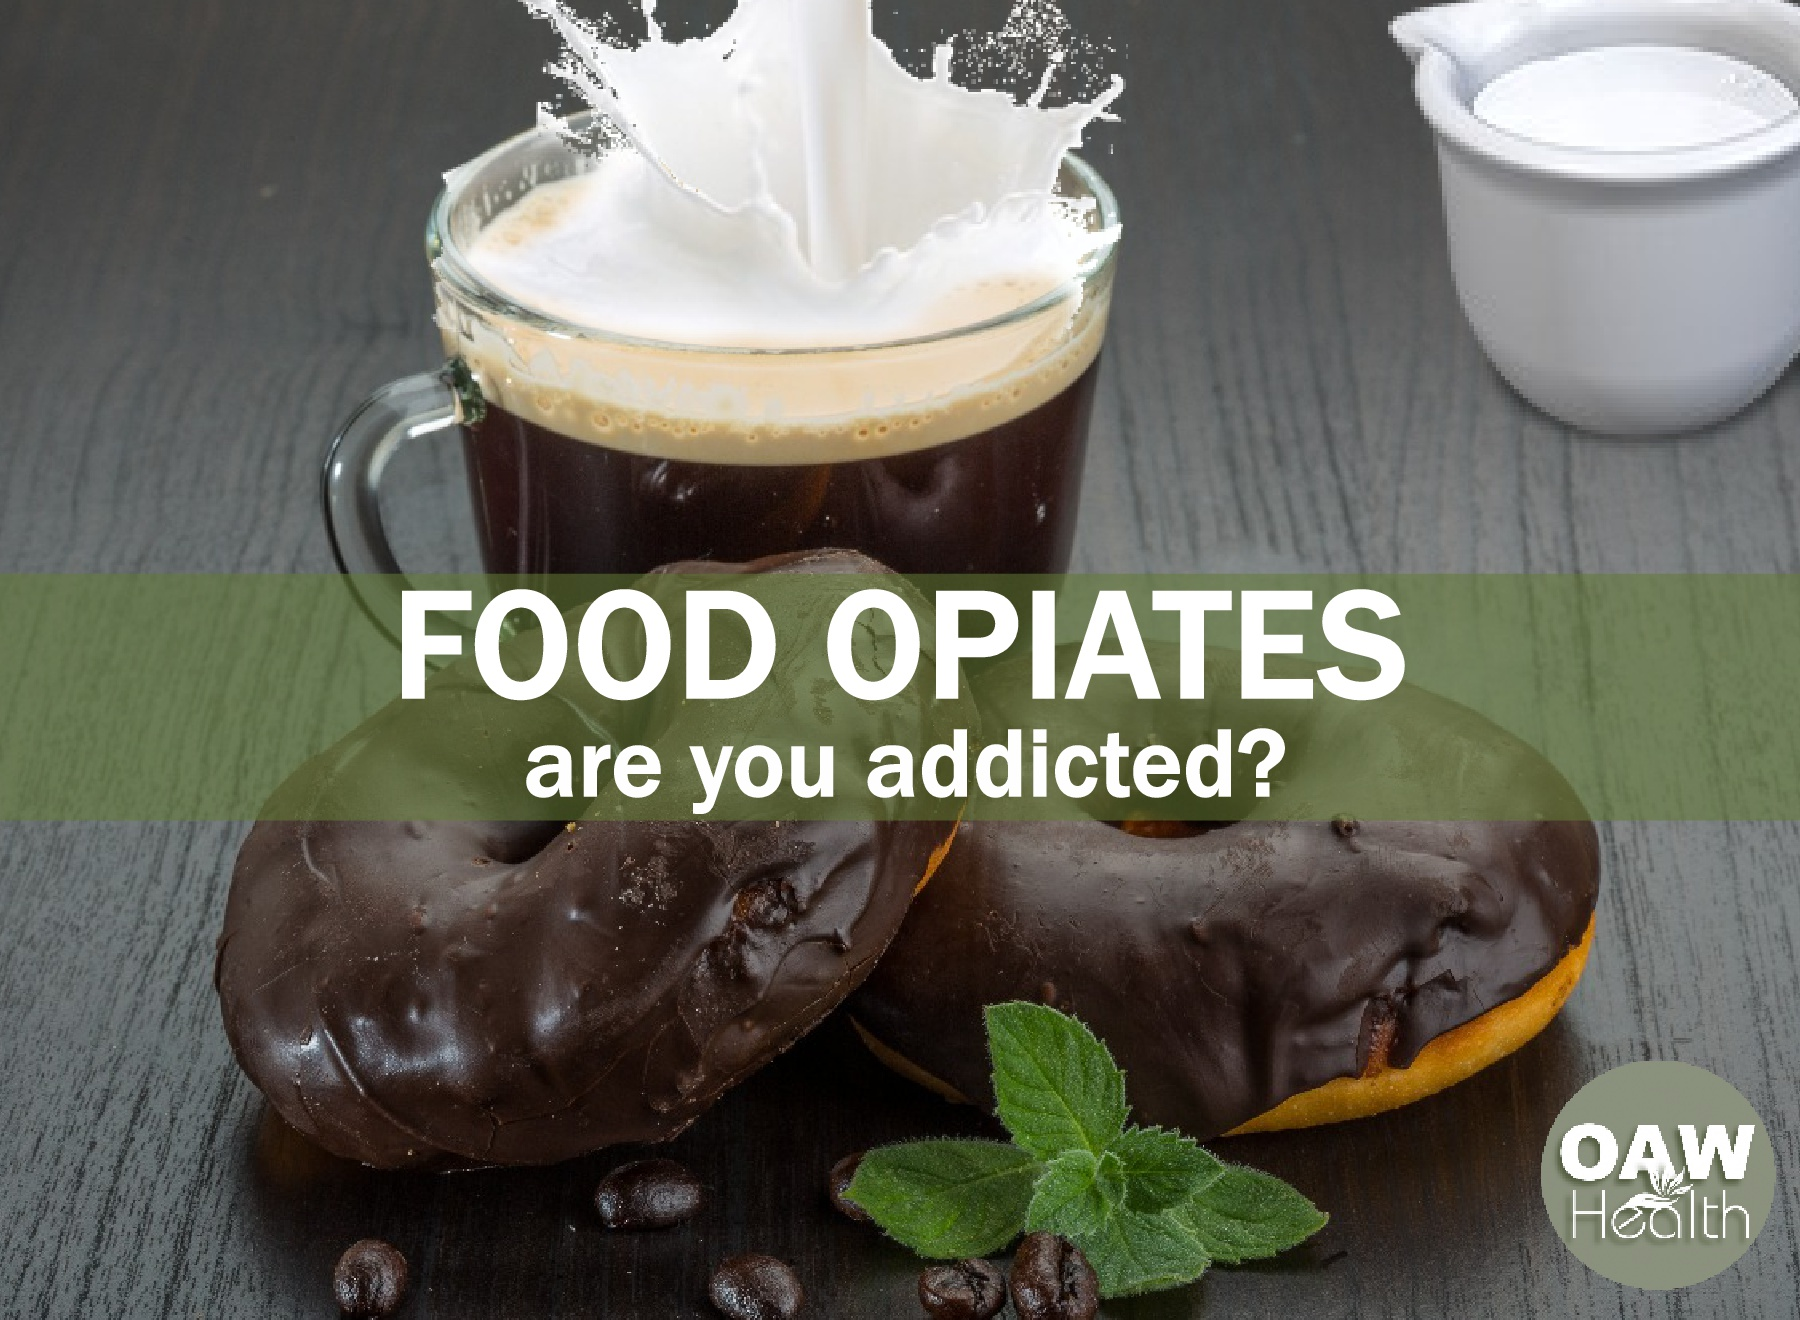 Food Opiates – Are You Addicted?